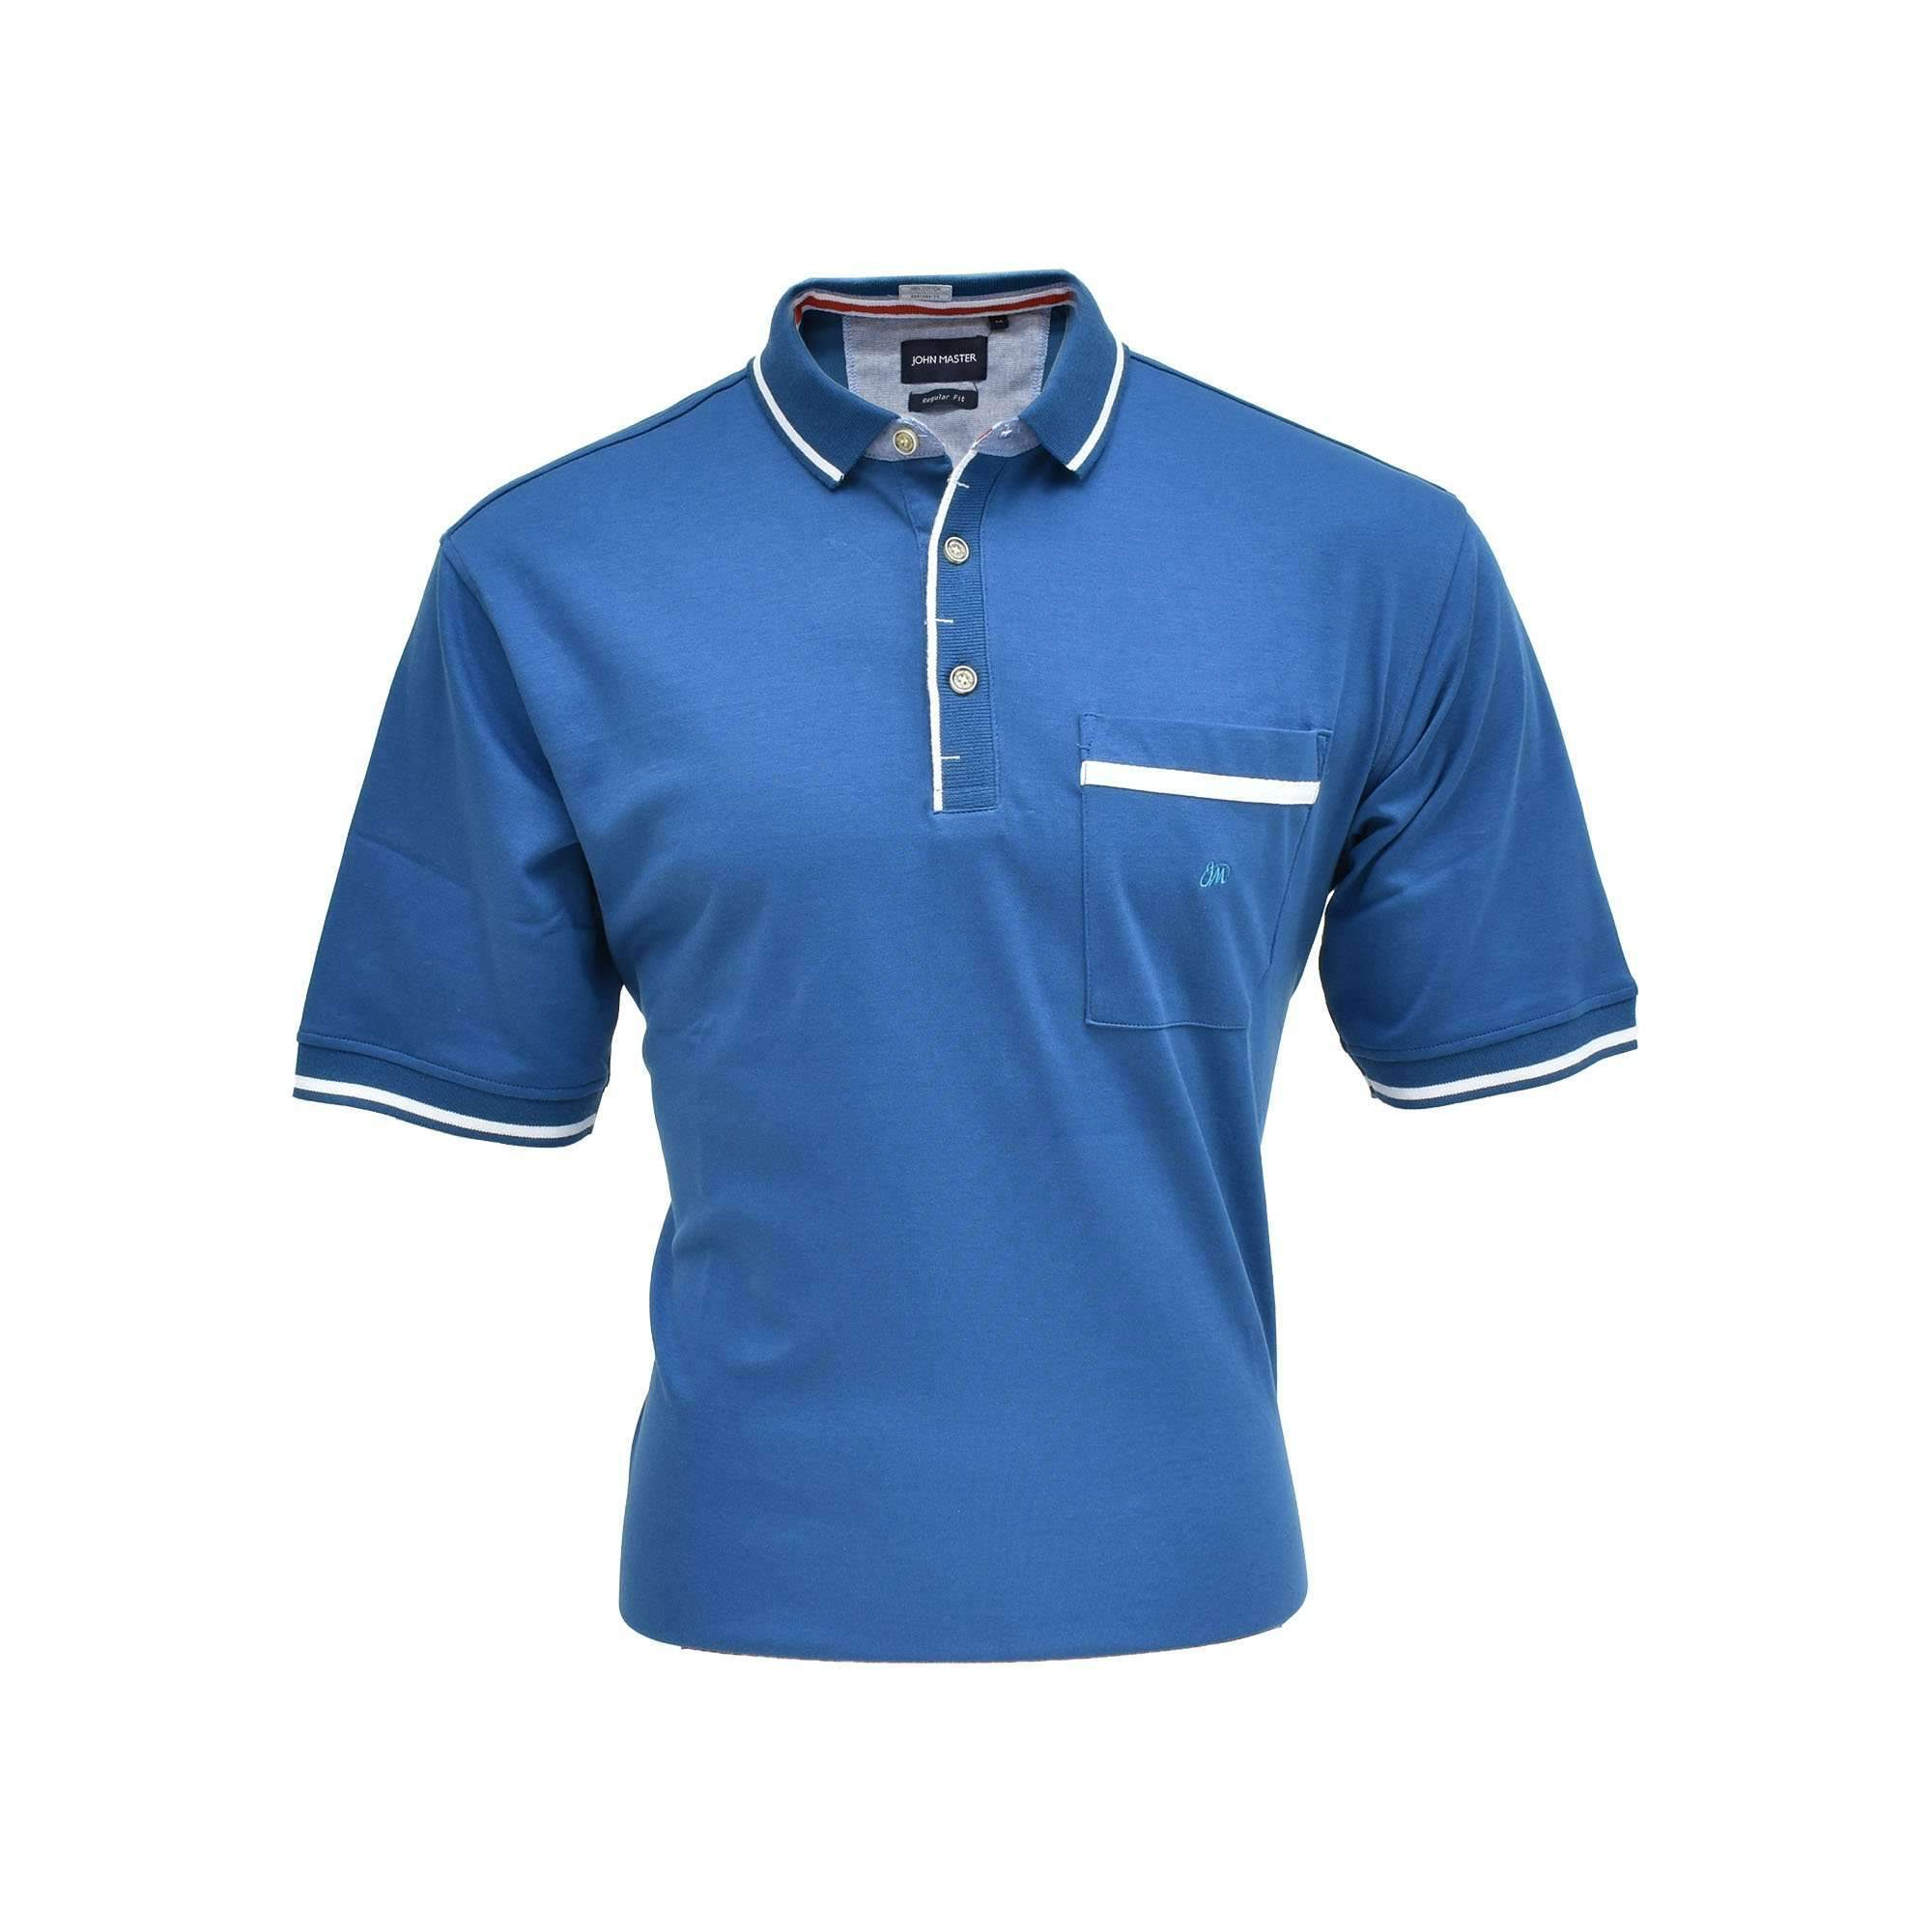 John Master Basic Polo Turquoise 8007000 : Buy John Master online at CMG.MY